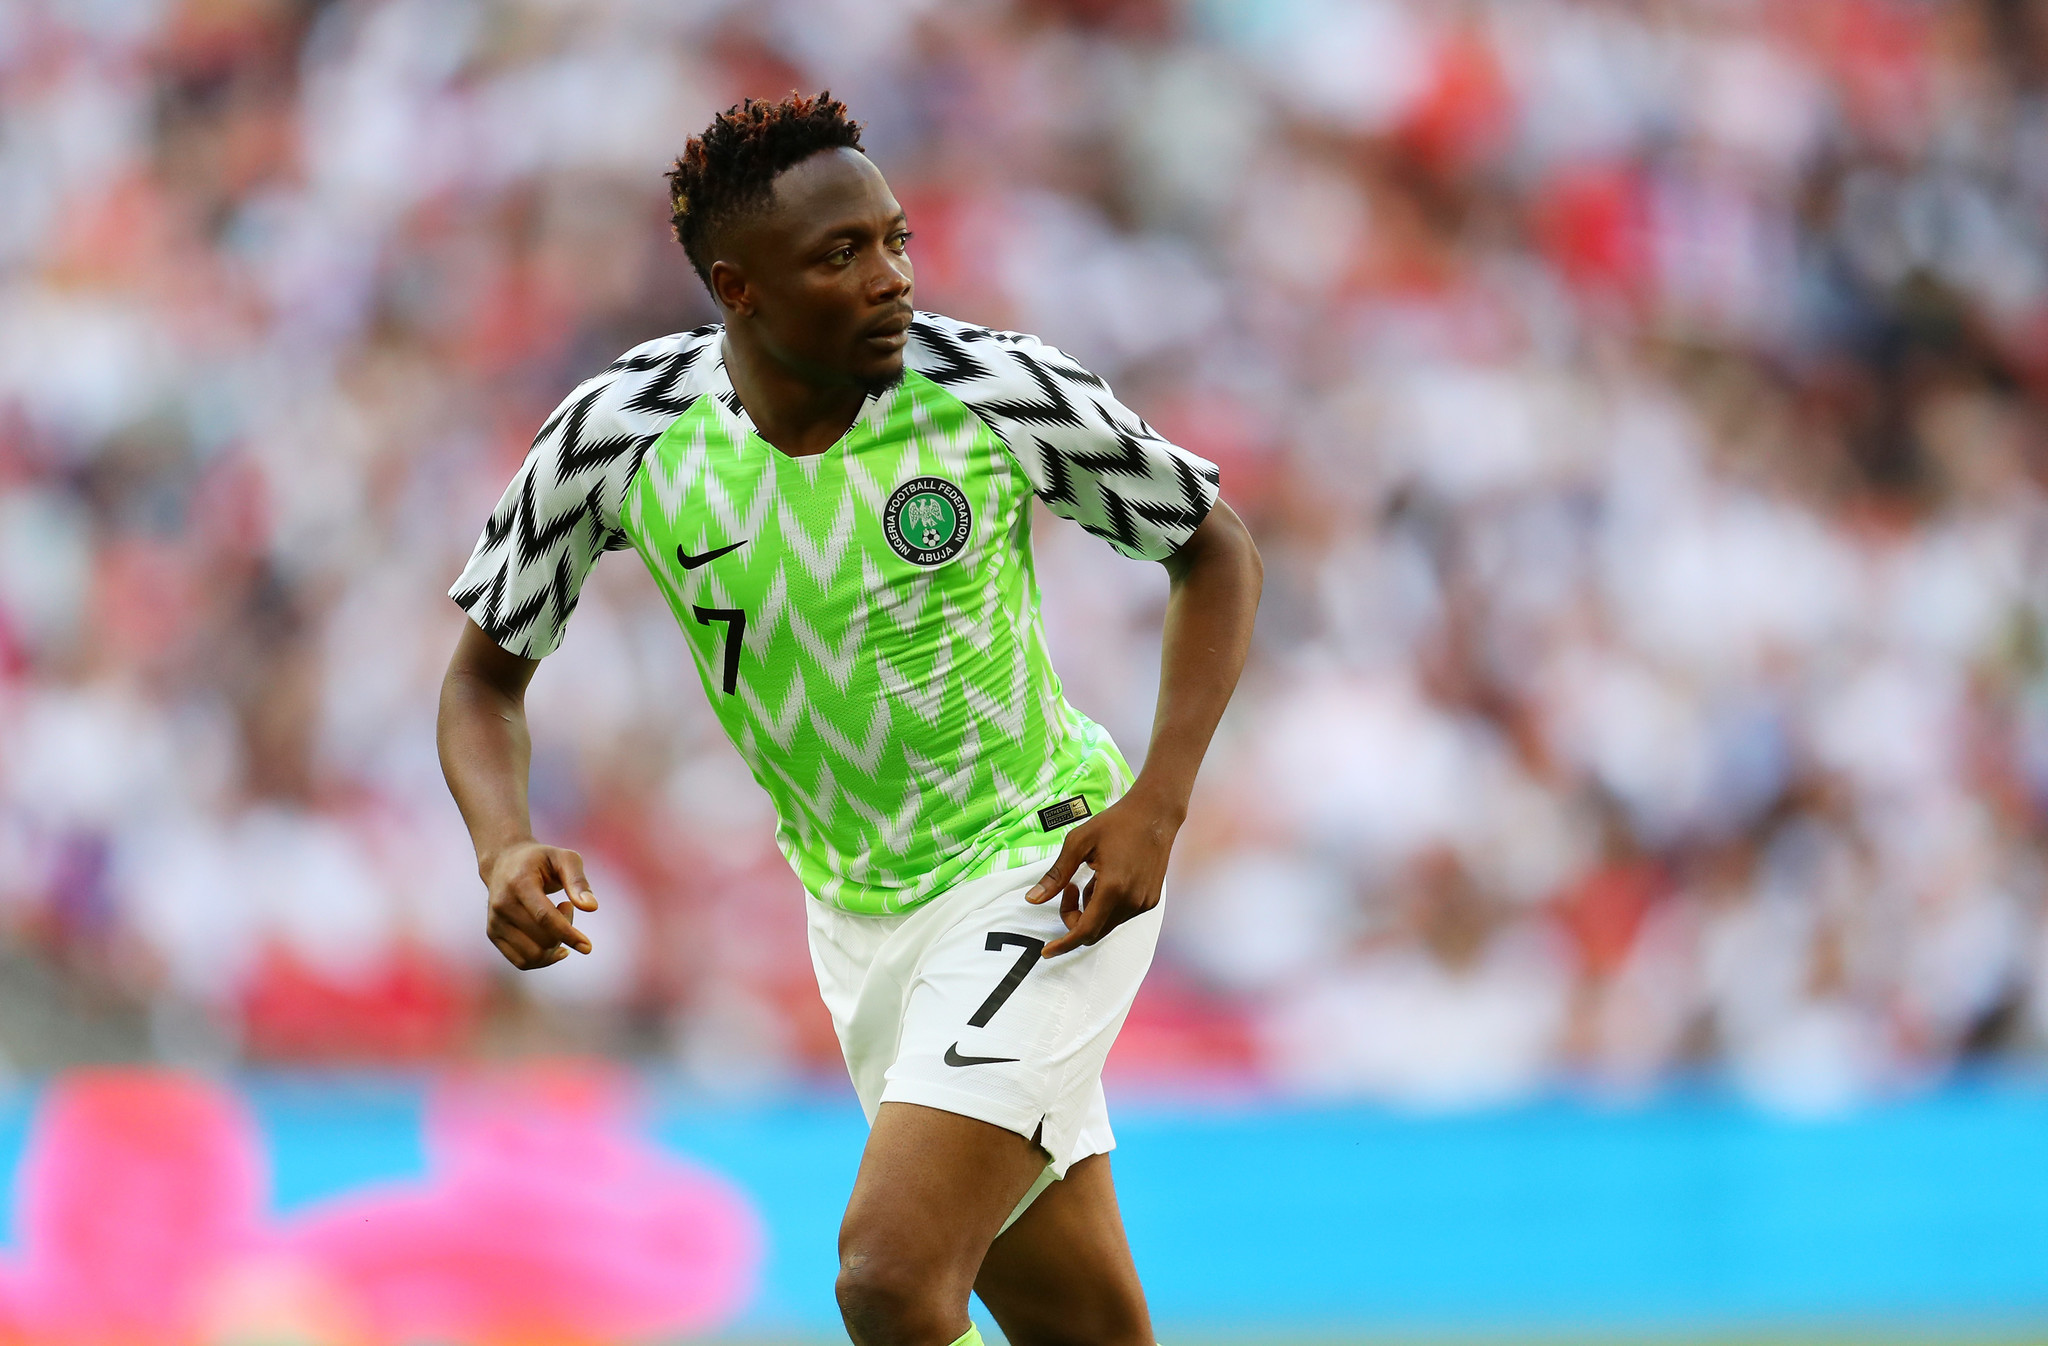 d1e455fe346 Nigeria's bright, trippy uniforms a hit among World Cup uniforms - Chicago  Tribune